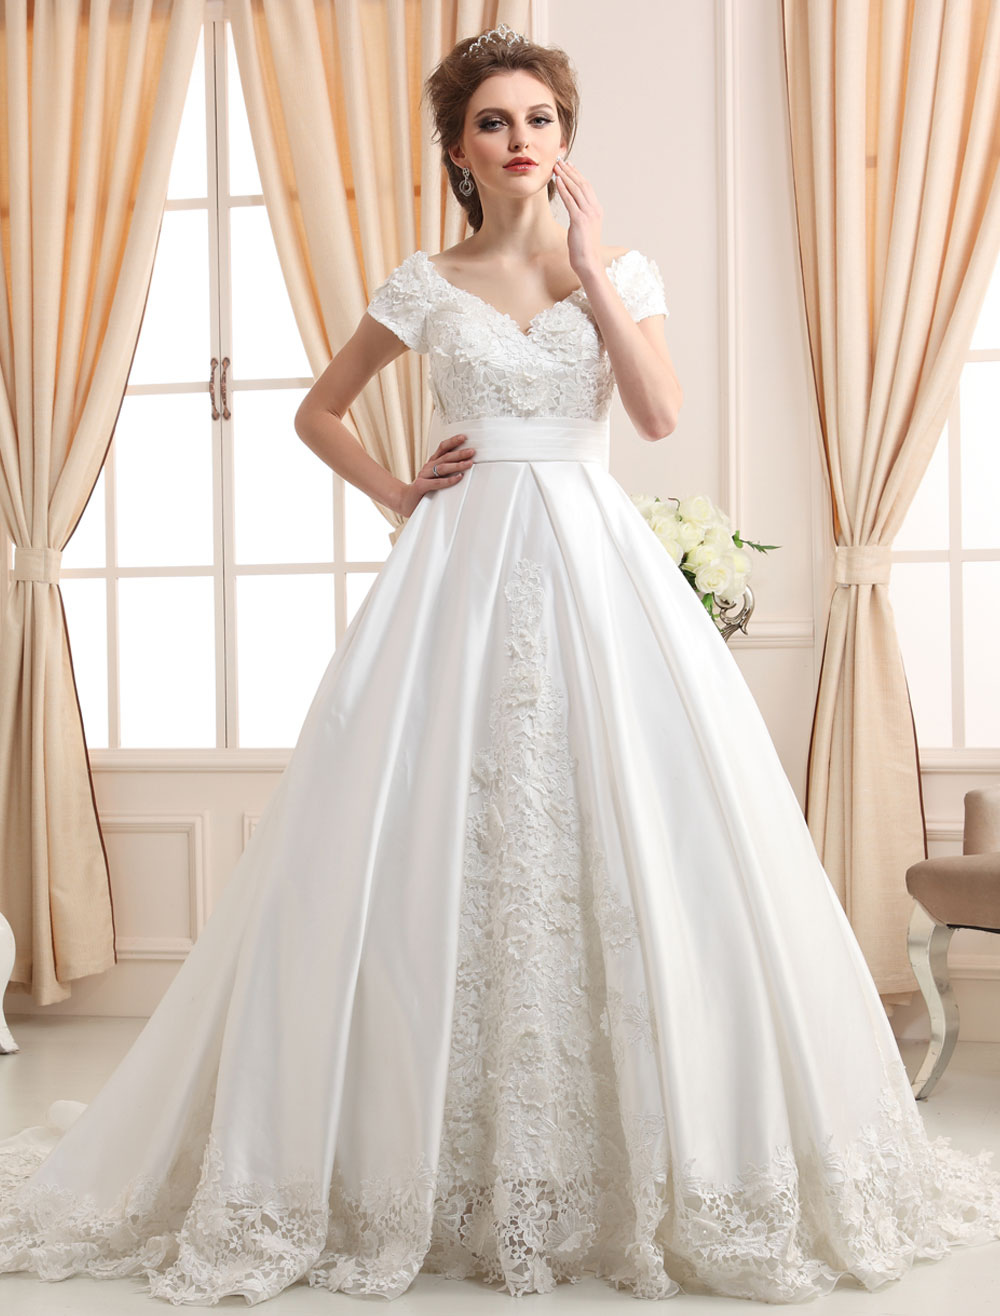 Chapel Train Ivory Wedding Dress For Bride With Off The Shoulder Bow